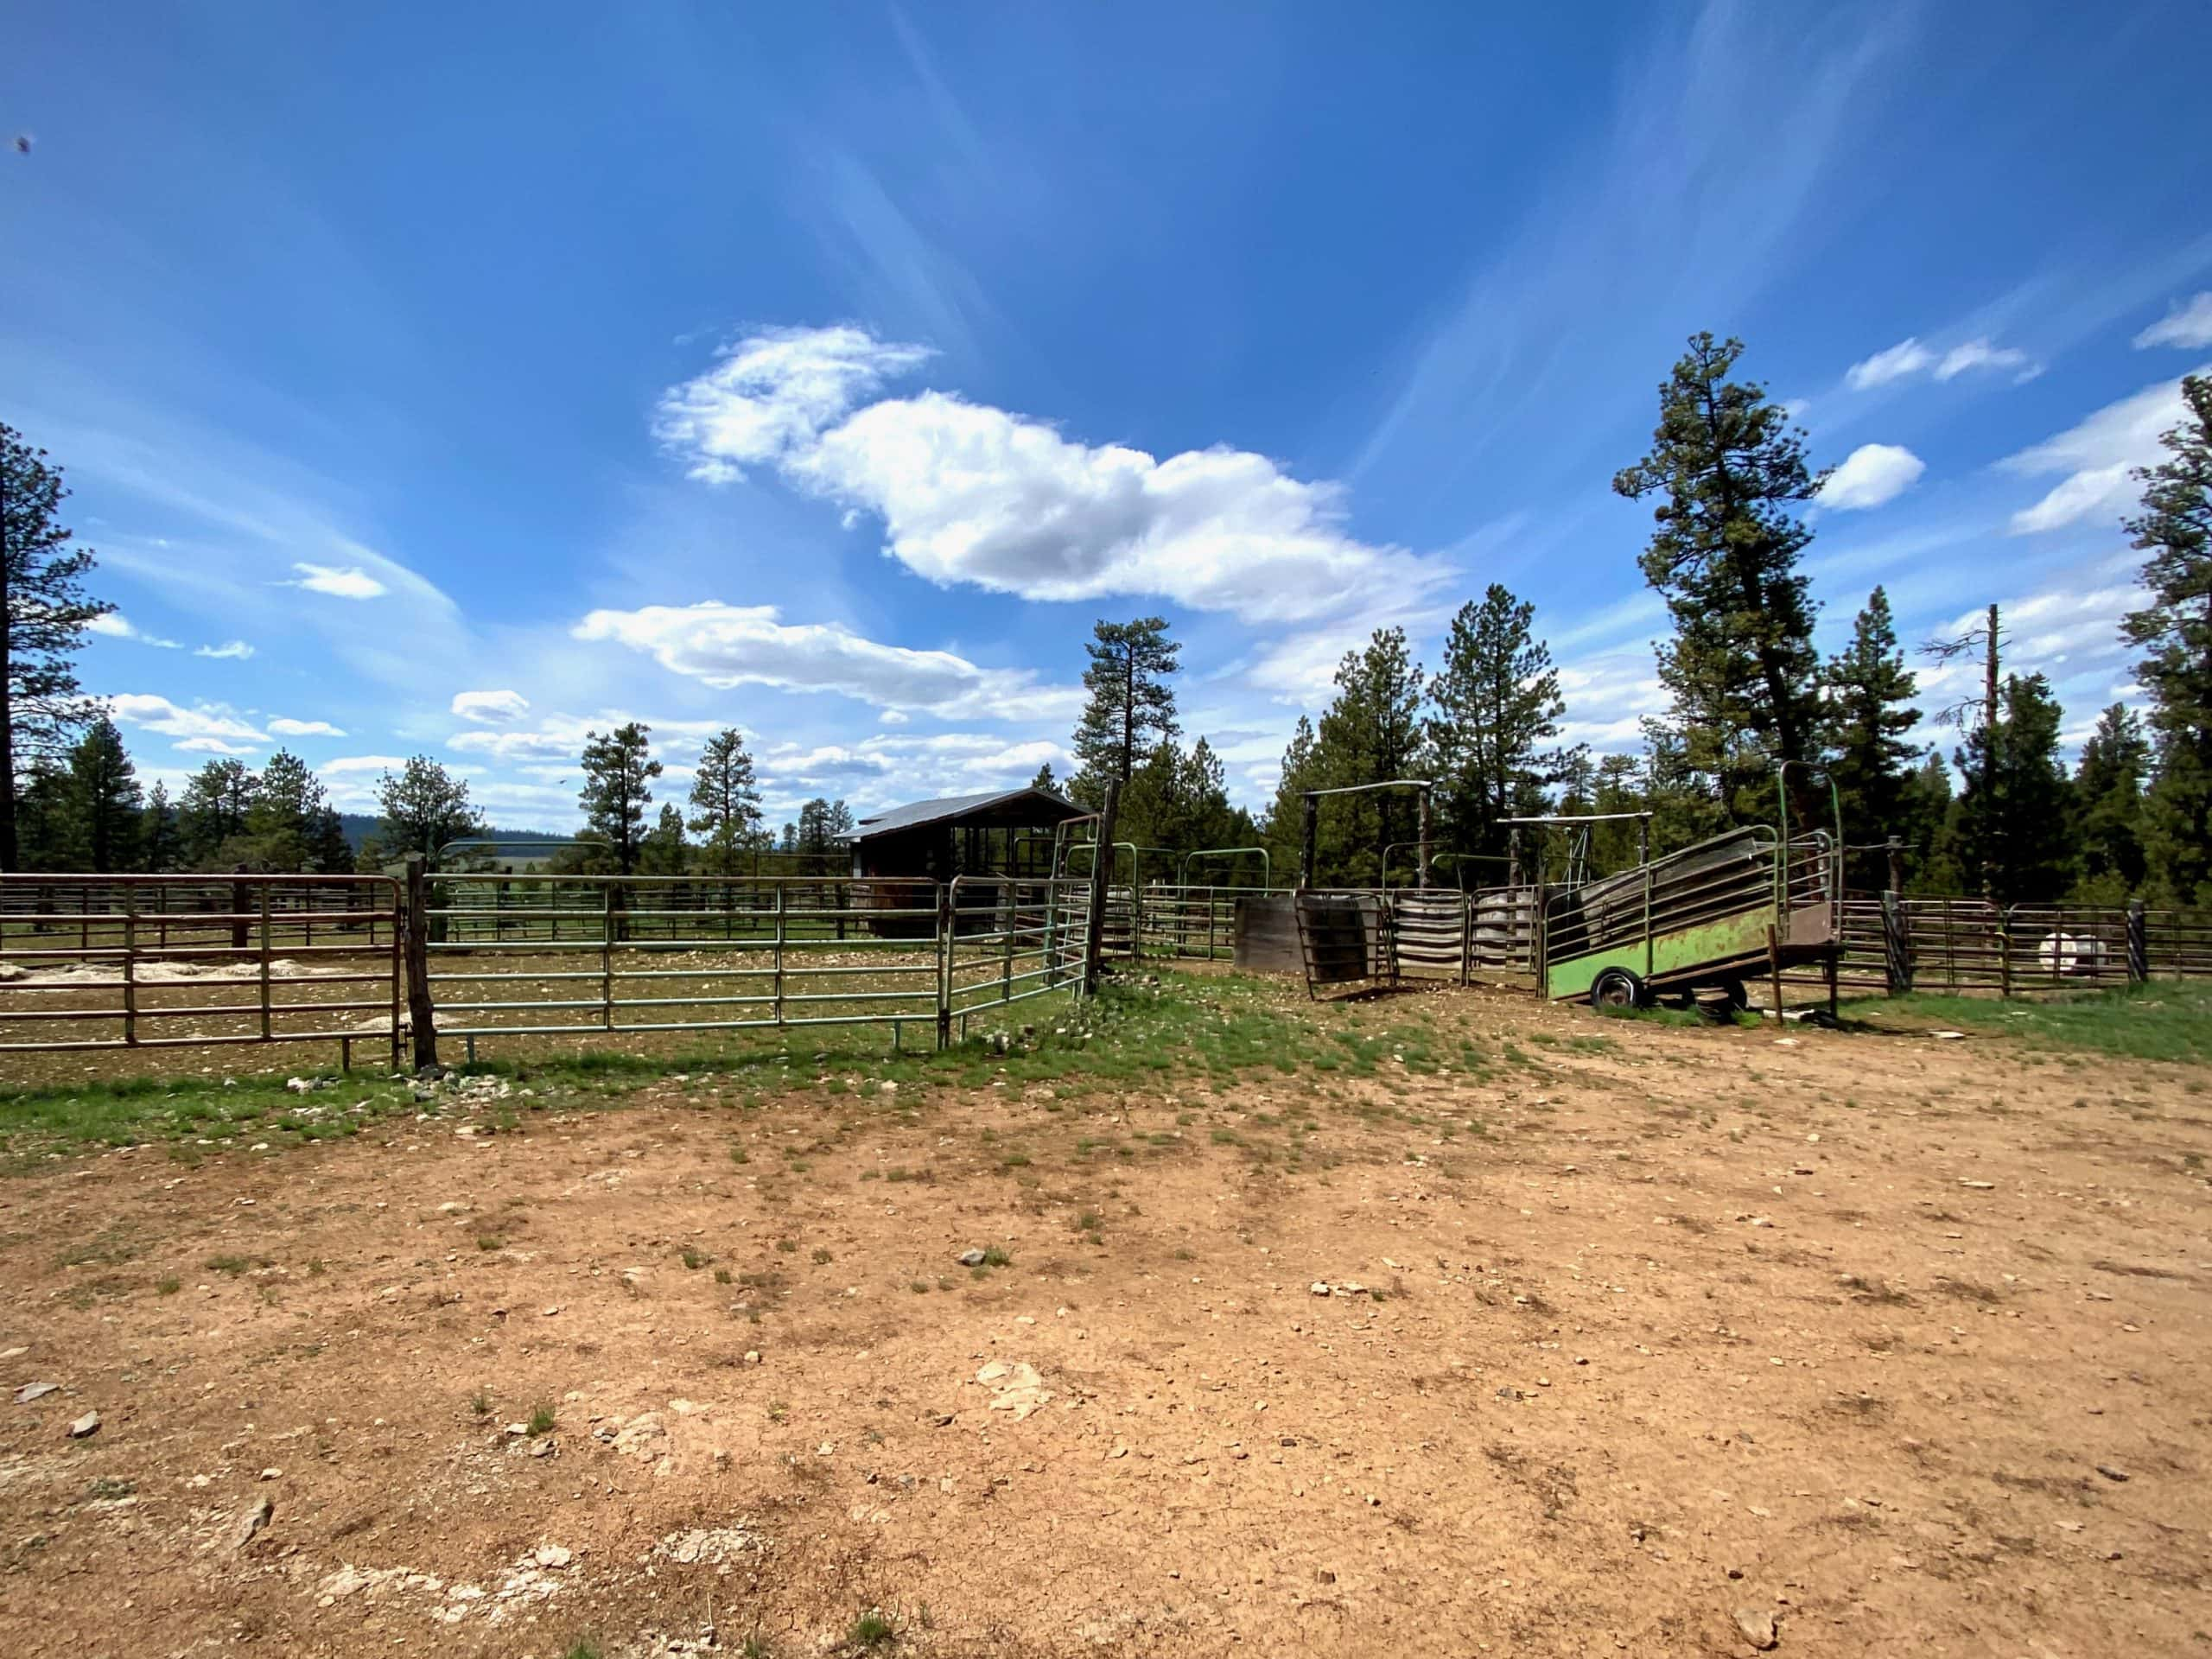 Corrals along Little Summit Prairie in the Ochoco National forest near Paulina, OR.